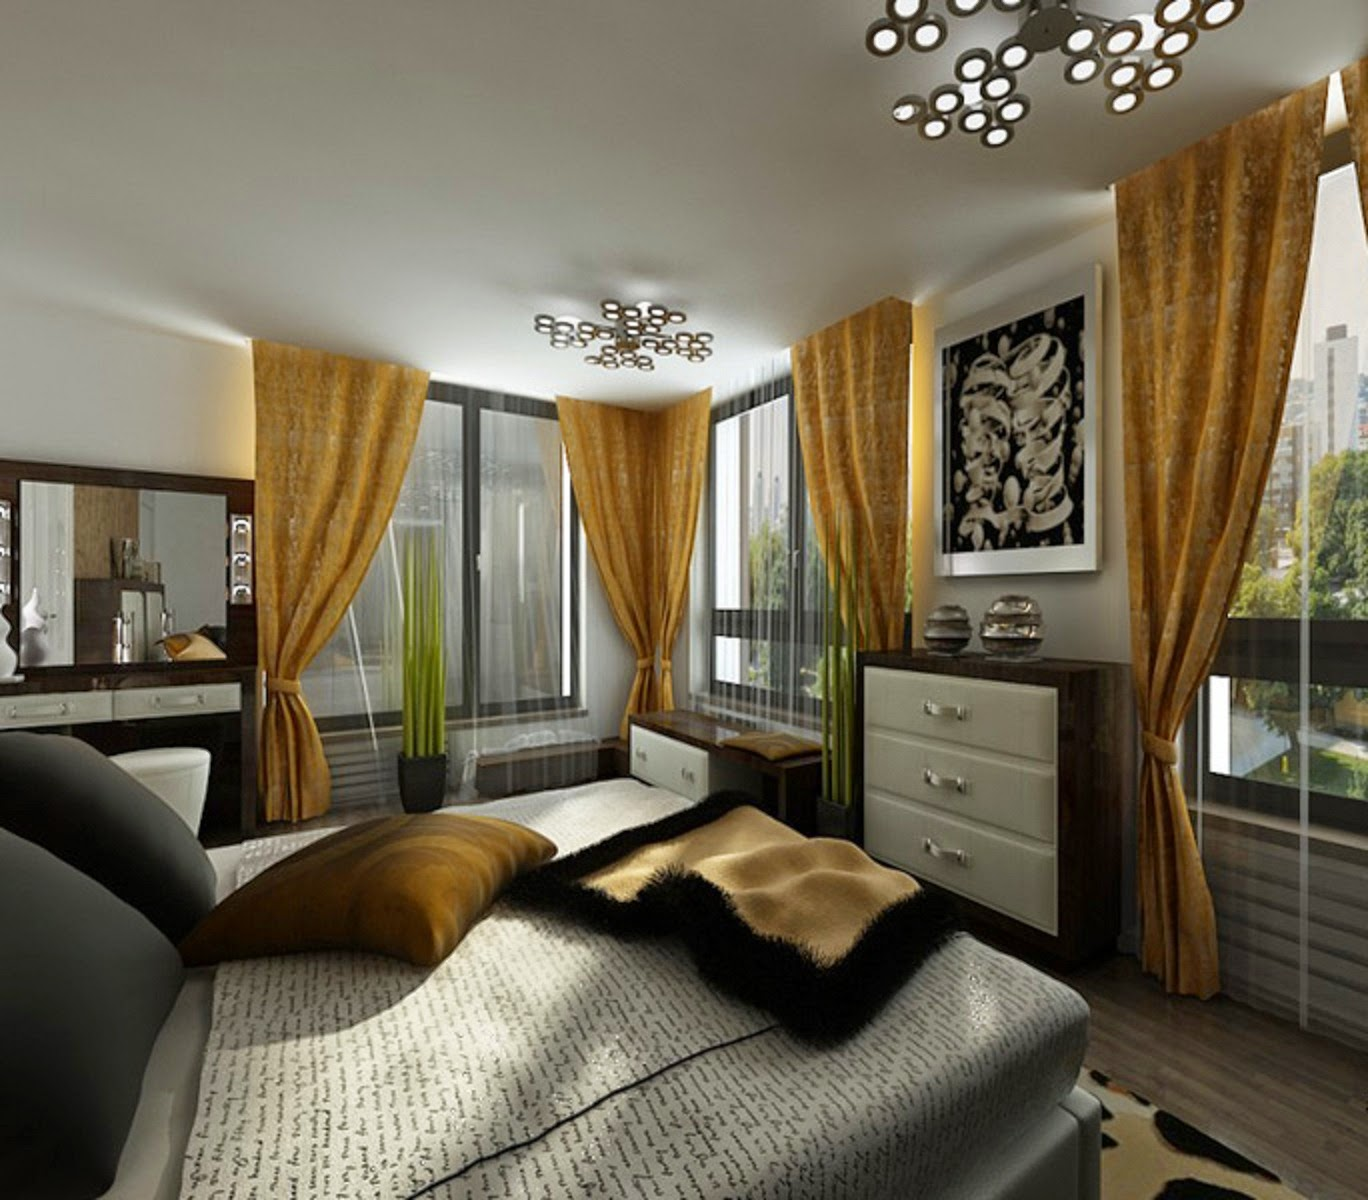 Beautiful Bedroom Design: Dynamic Views: Most Beautiful Bedroom Interior Designs